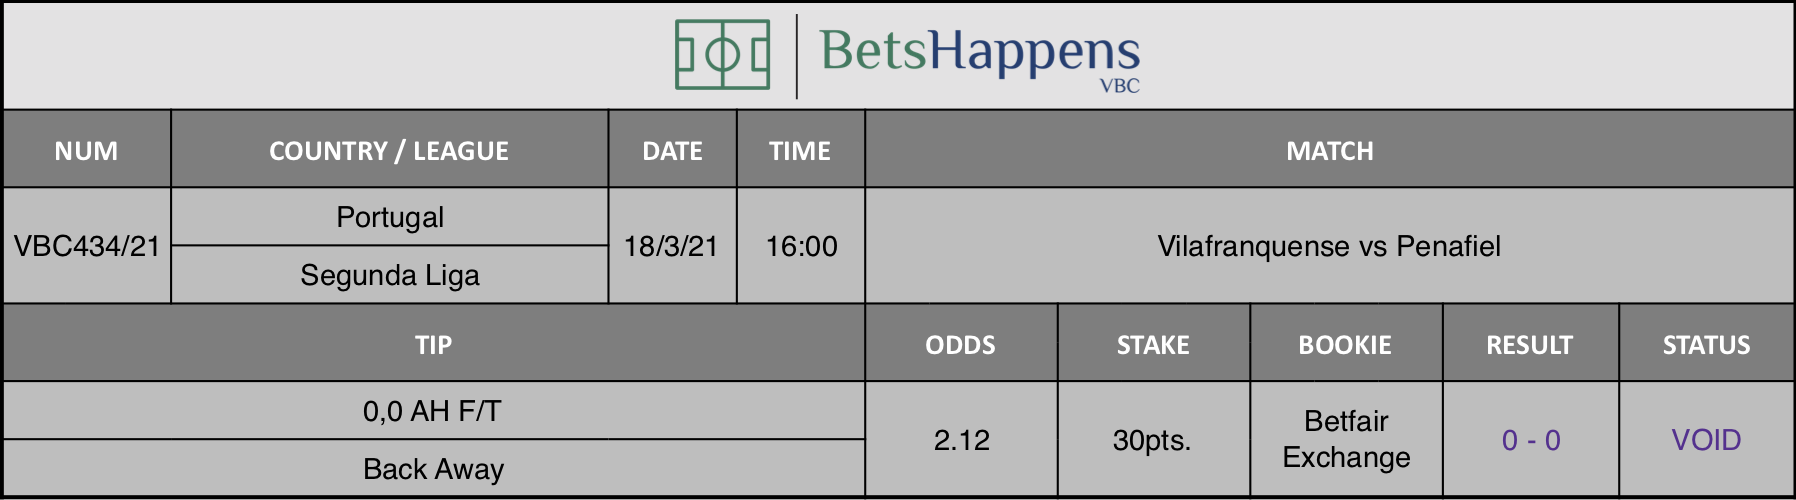 Results of our tip for the Vilafranquense vs Penafiel match where 0,0 AH F/T Back Away is recommended.